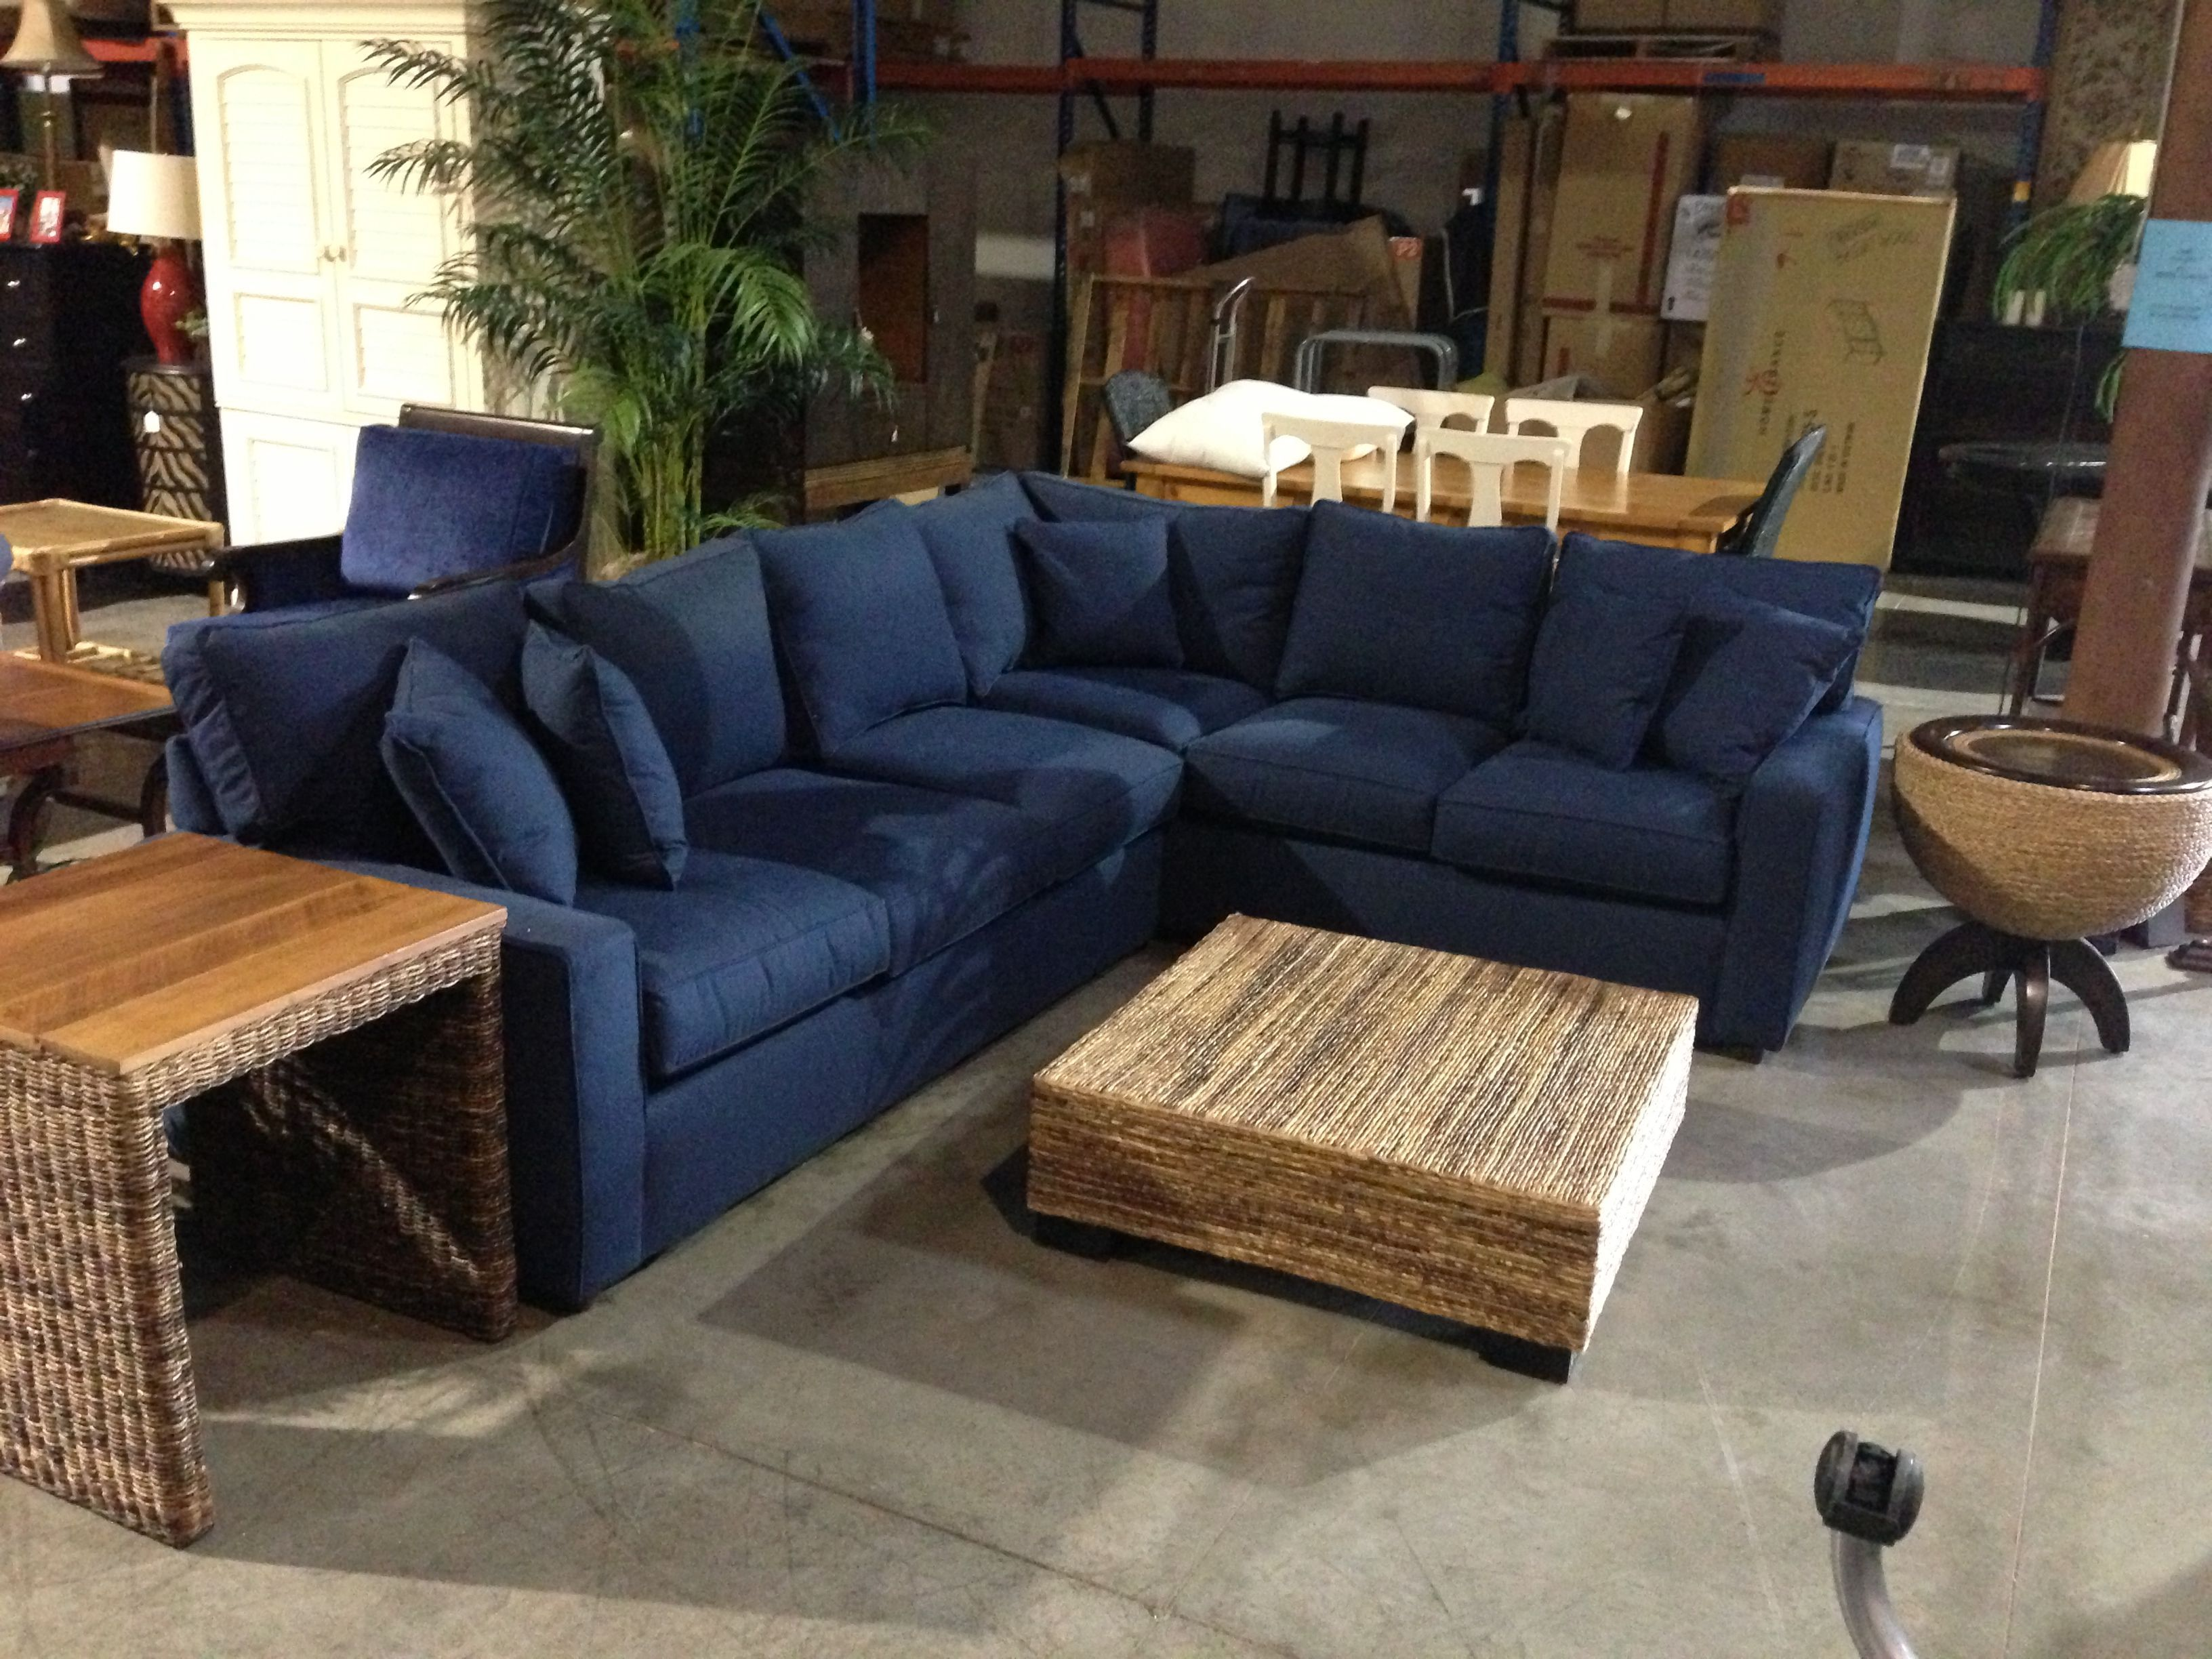 Excellent Rowe Navy Sectional Sofa Tropical Lake House Navy Bralicious Painted Fabric Chair Ideas Braliciousco